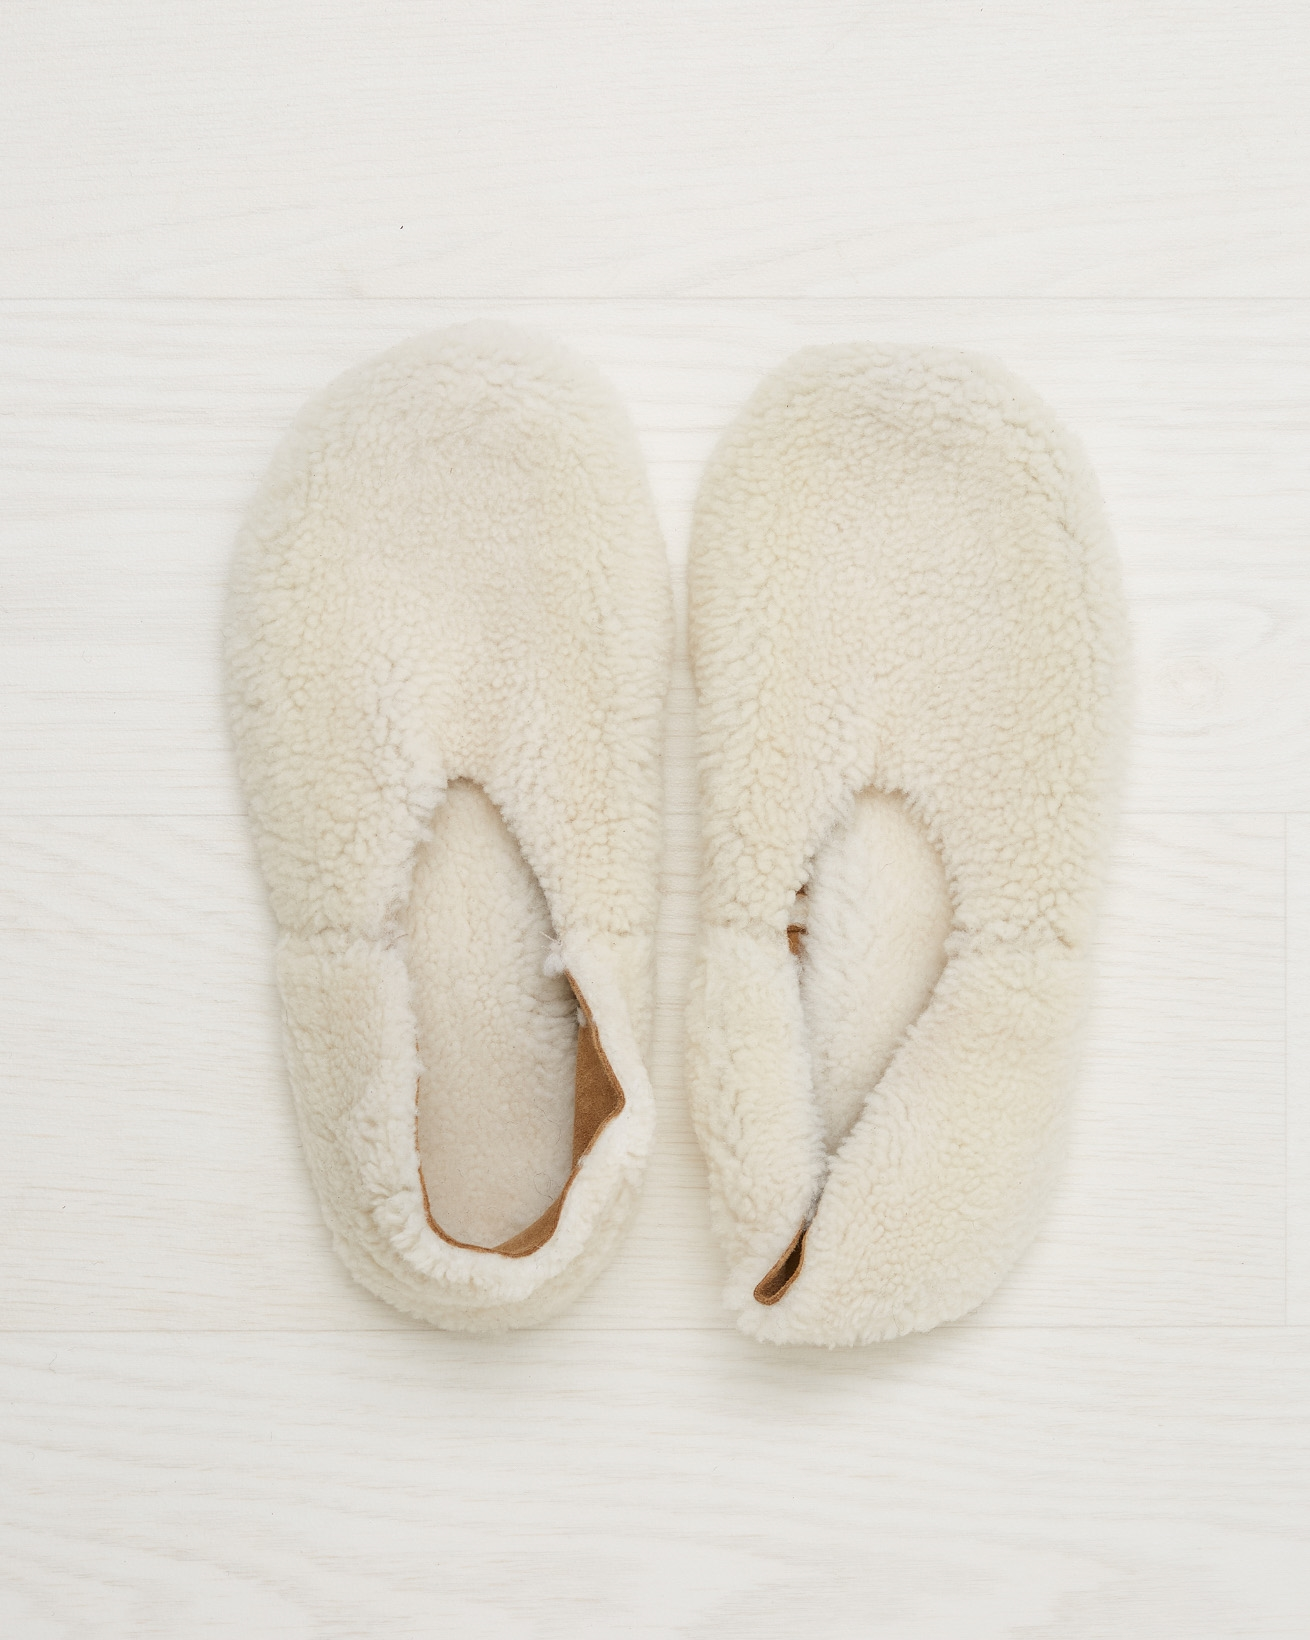 Cocoon Slipper - Ivory - Size 6 - 2547